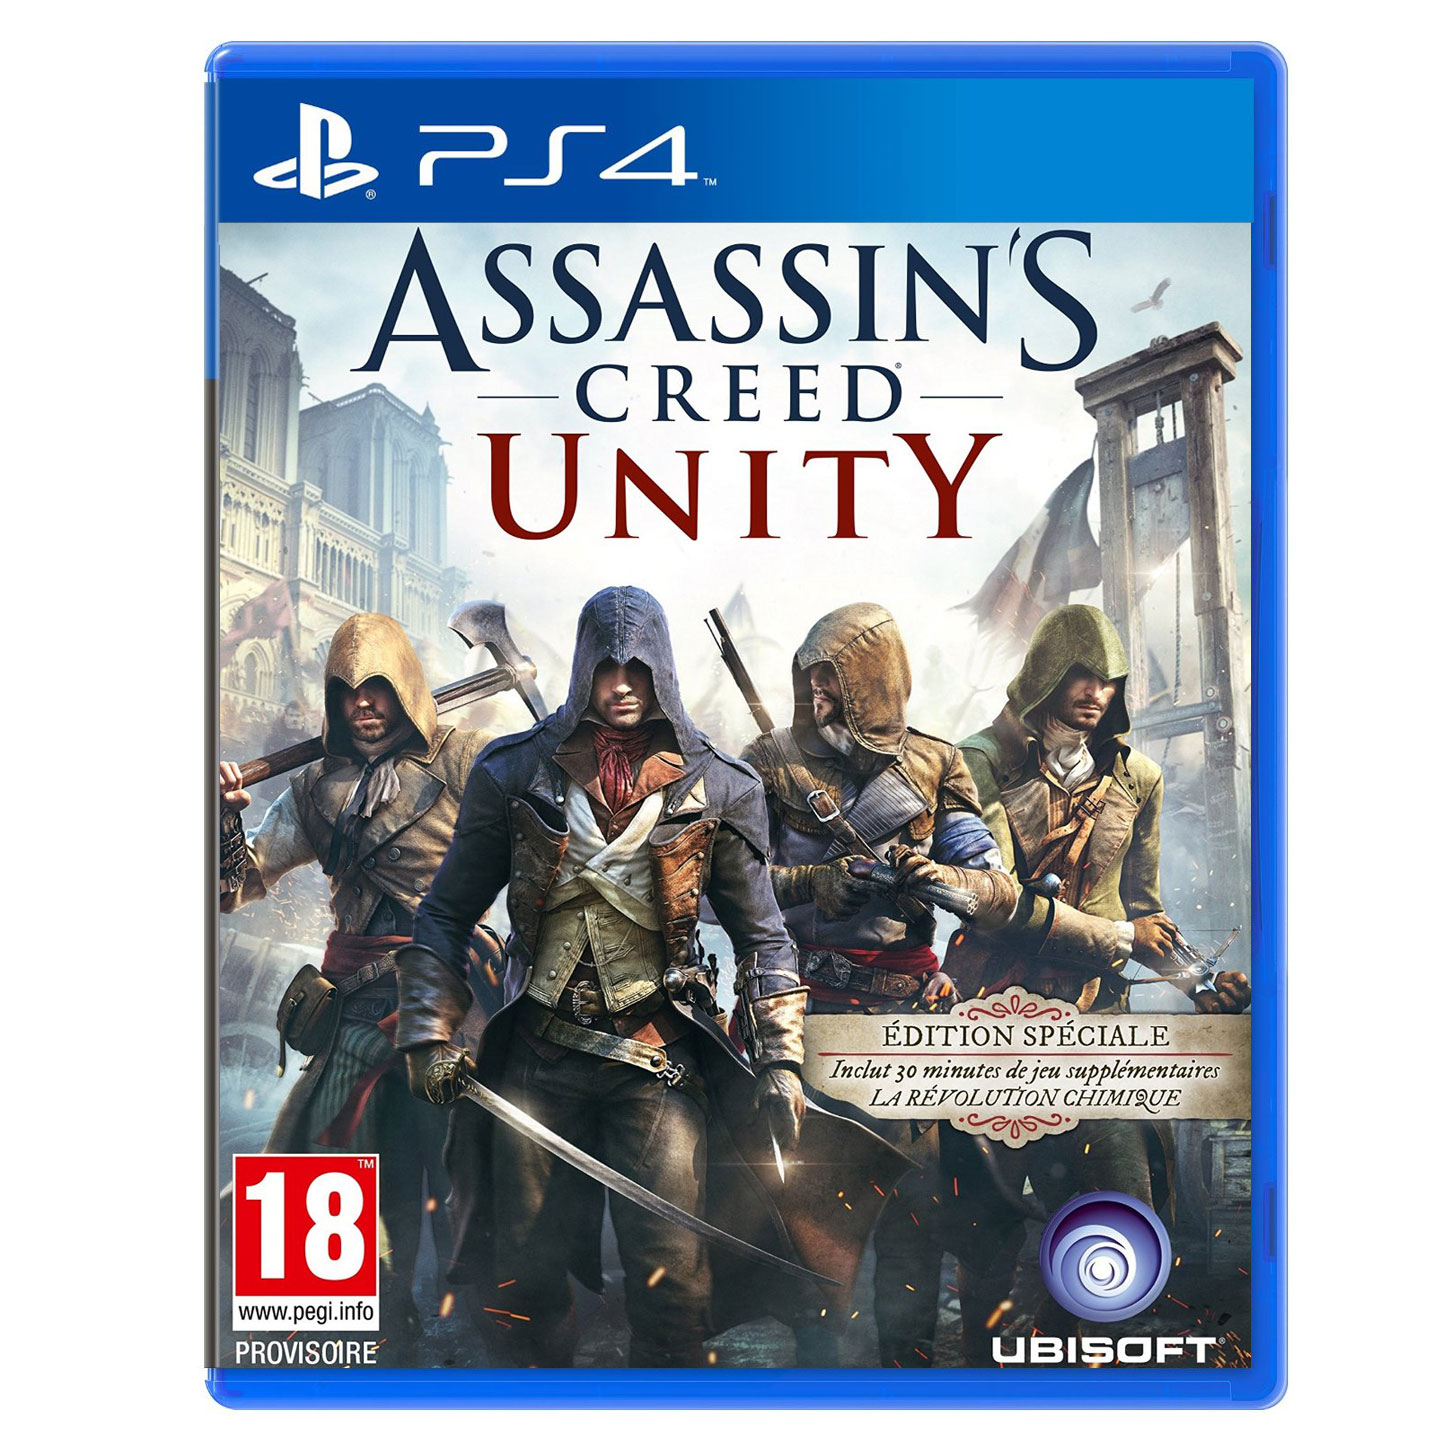 assassin 39 s creed unity edition sp ciale ps4 jeux ps4 ubisoft sur. Black Bedroom Furniture Sets. Home Design Ideas